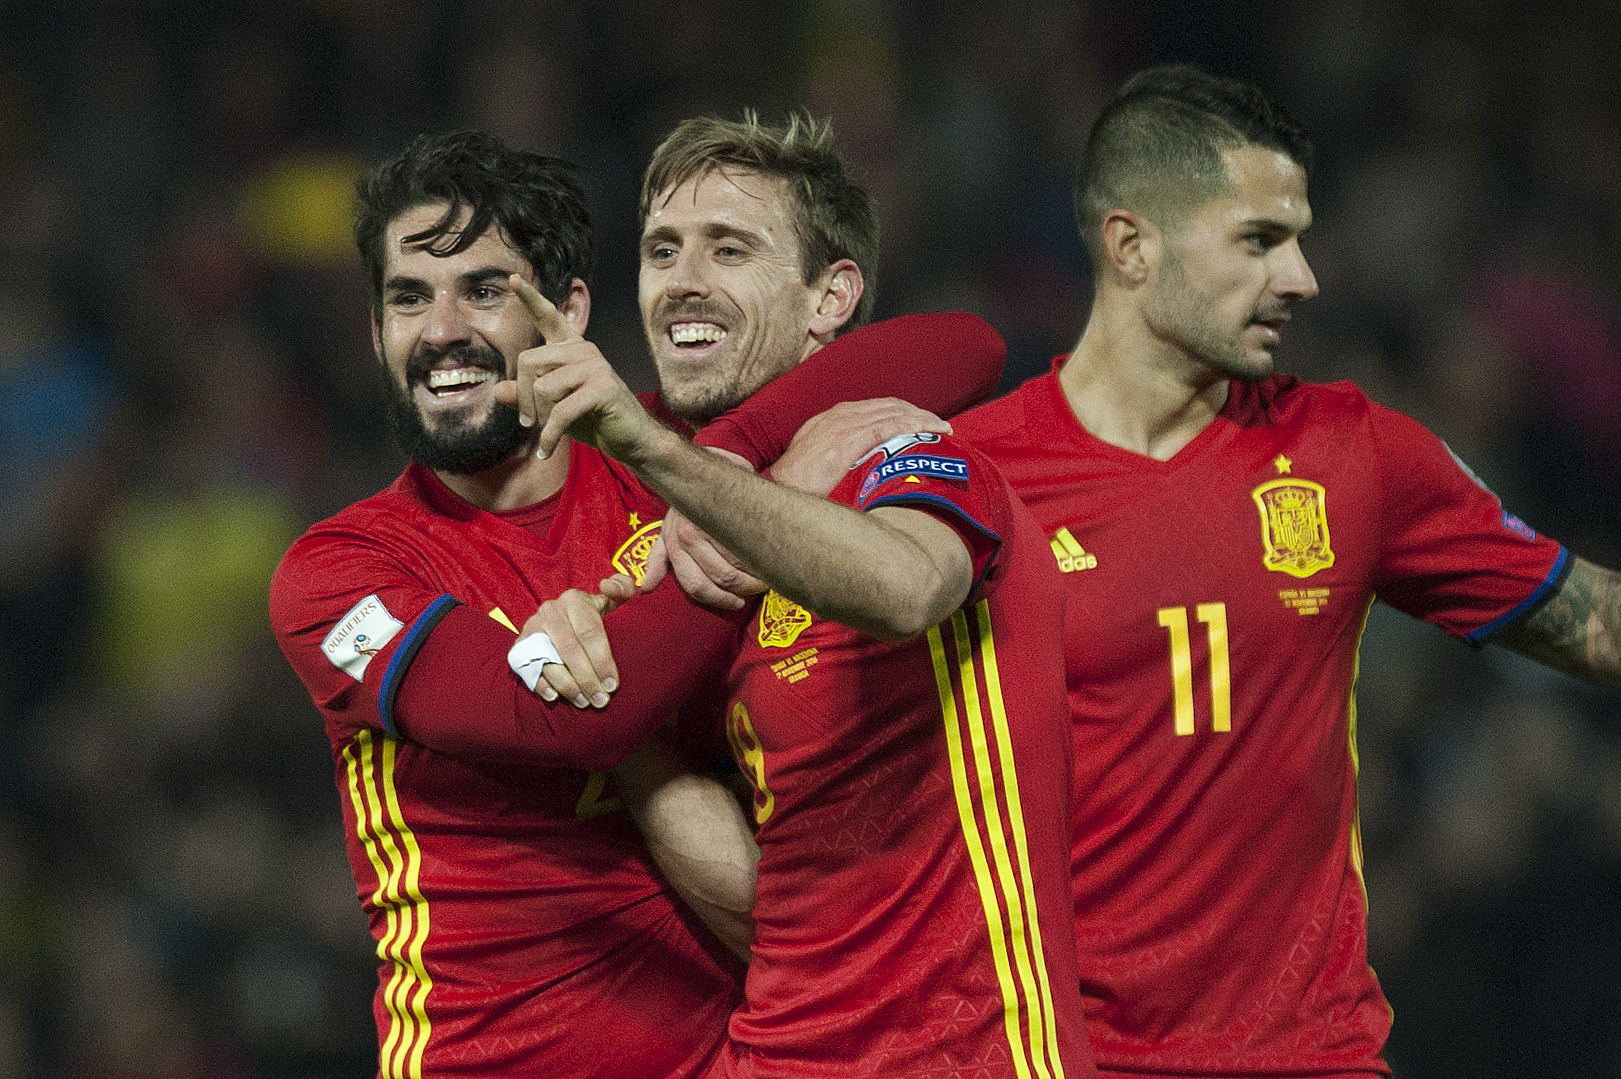 Arsenal star Nacho Monreal scores classy volley as Spain thump Macedonia 4-0